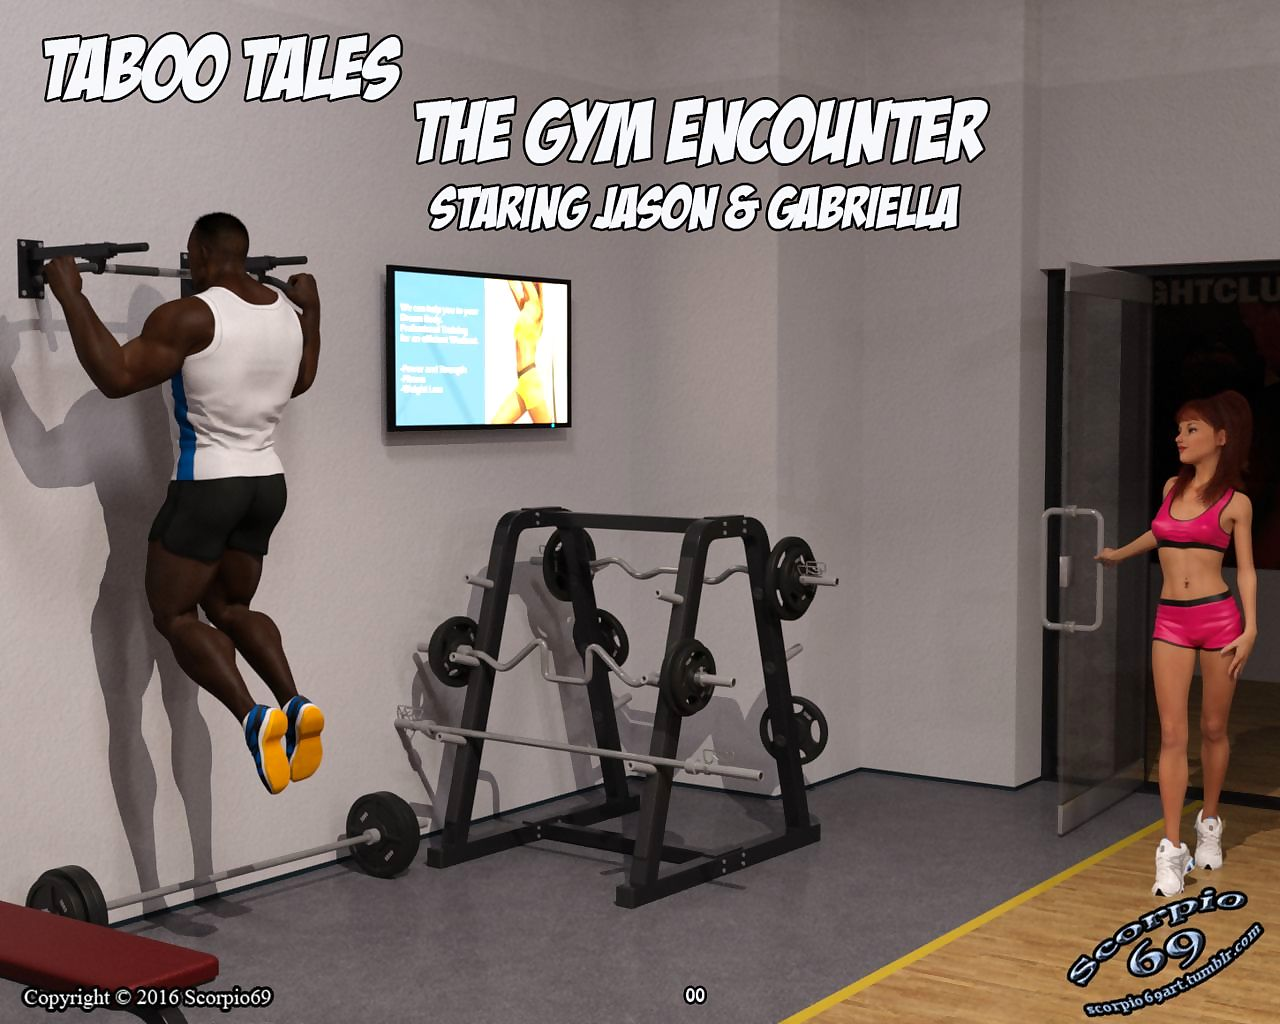 Be transferred to Gym Encounter- Prohibit Tales